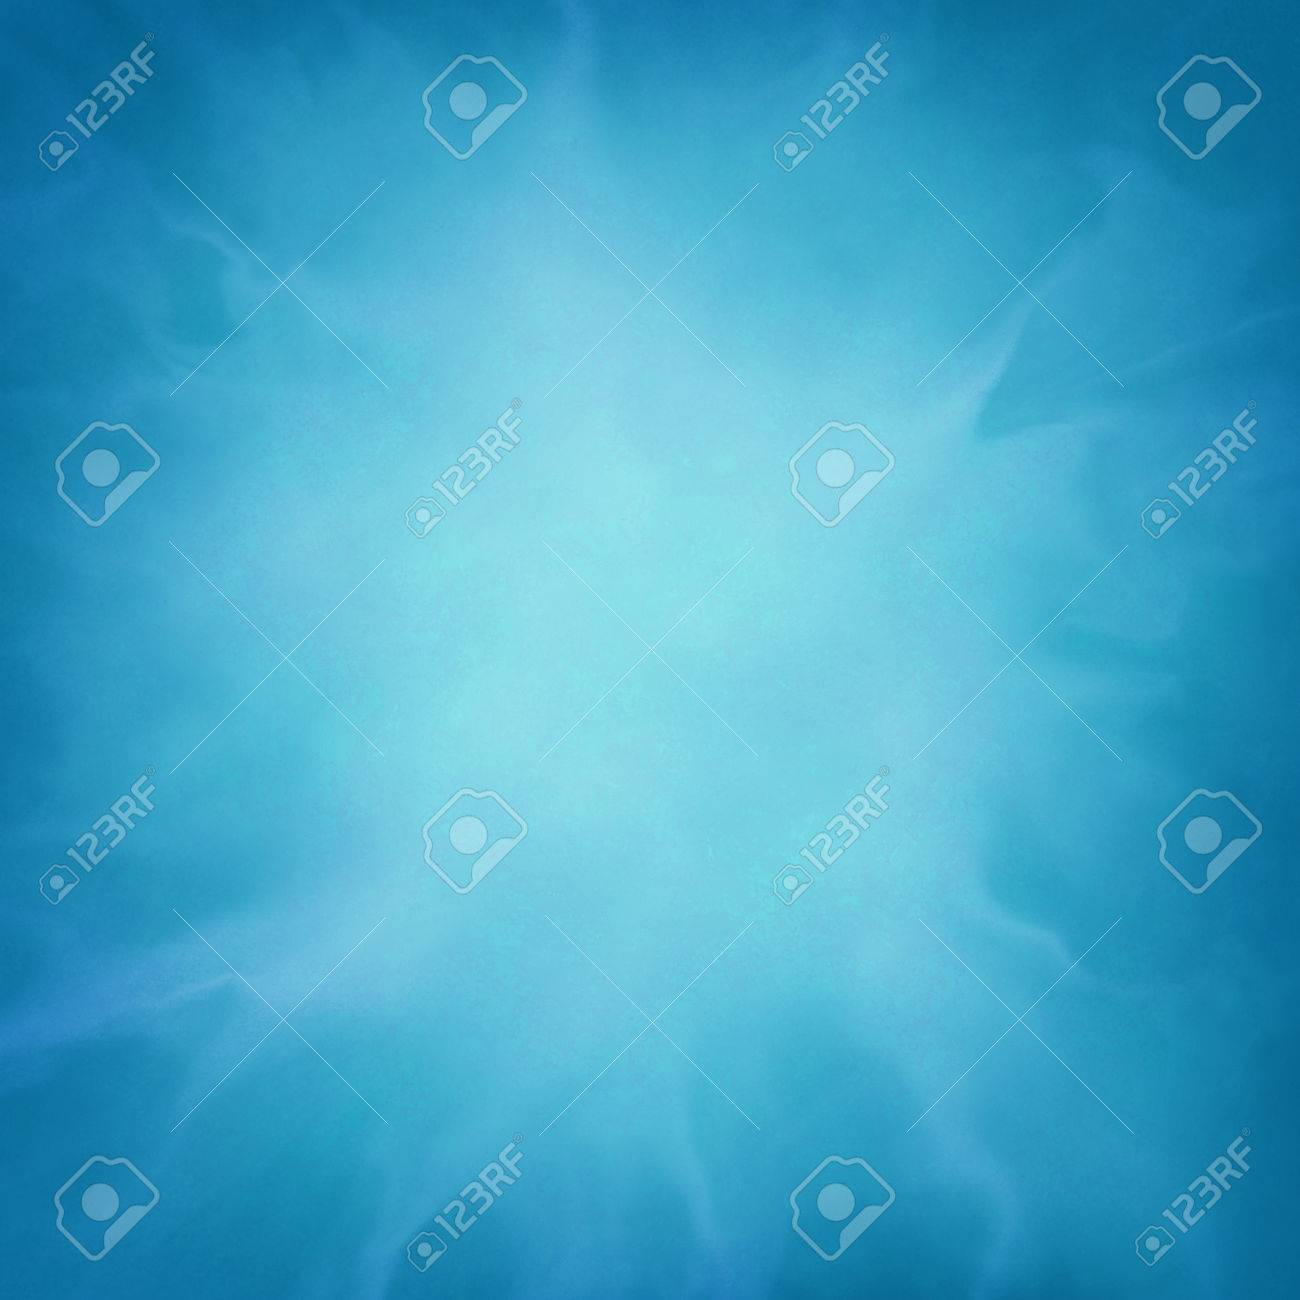 abstract blue background with wispy cloudy white design element - 46627273